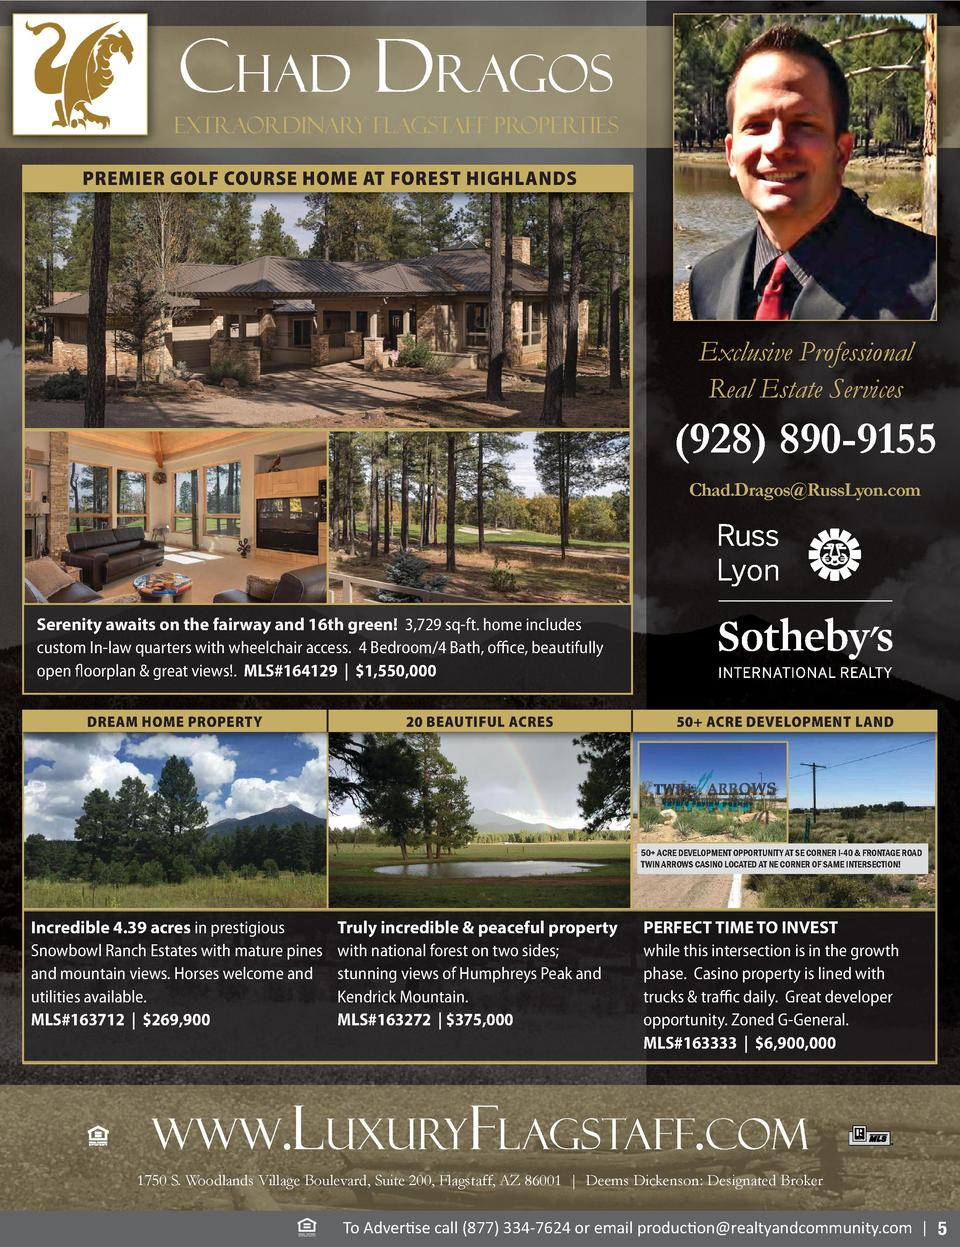 Chad dragos Extraordinary Flagstaff Properties PREMIER GOLF COURSE HOME AT FOREST HIGHLANDS  Exclusive Professional Real E...